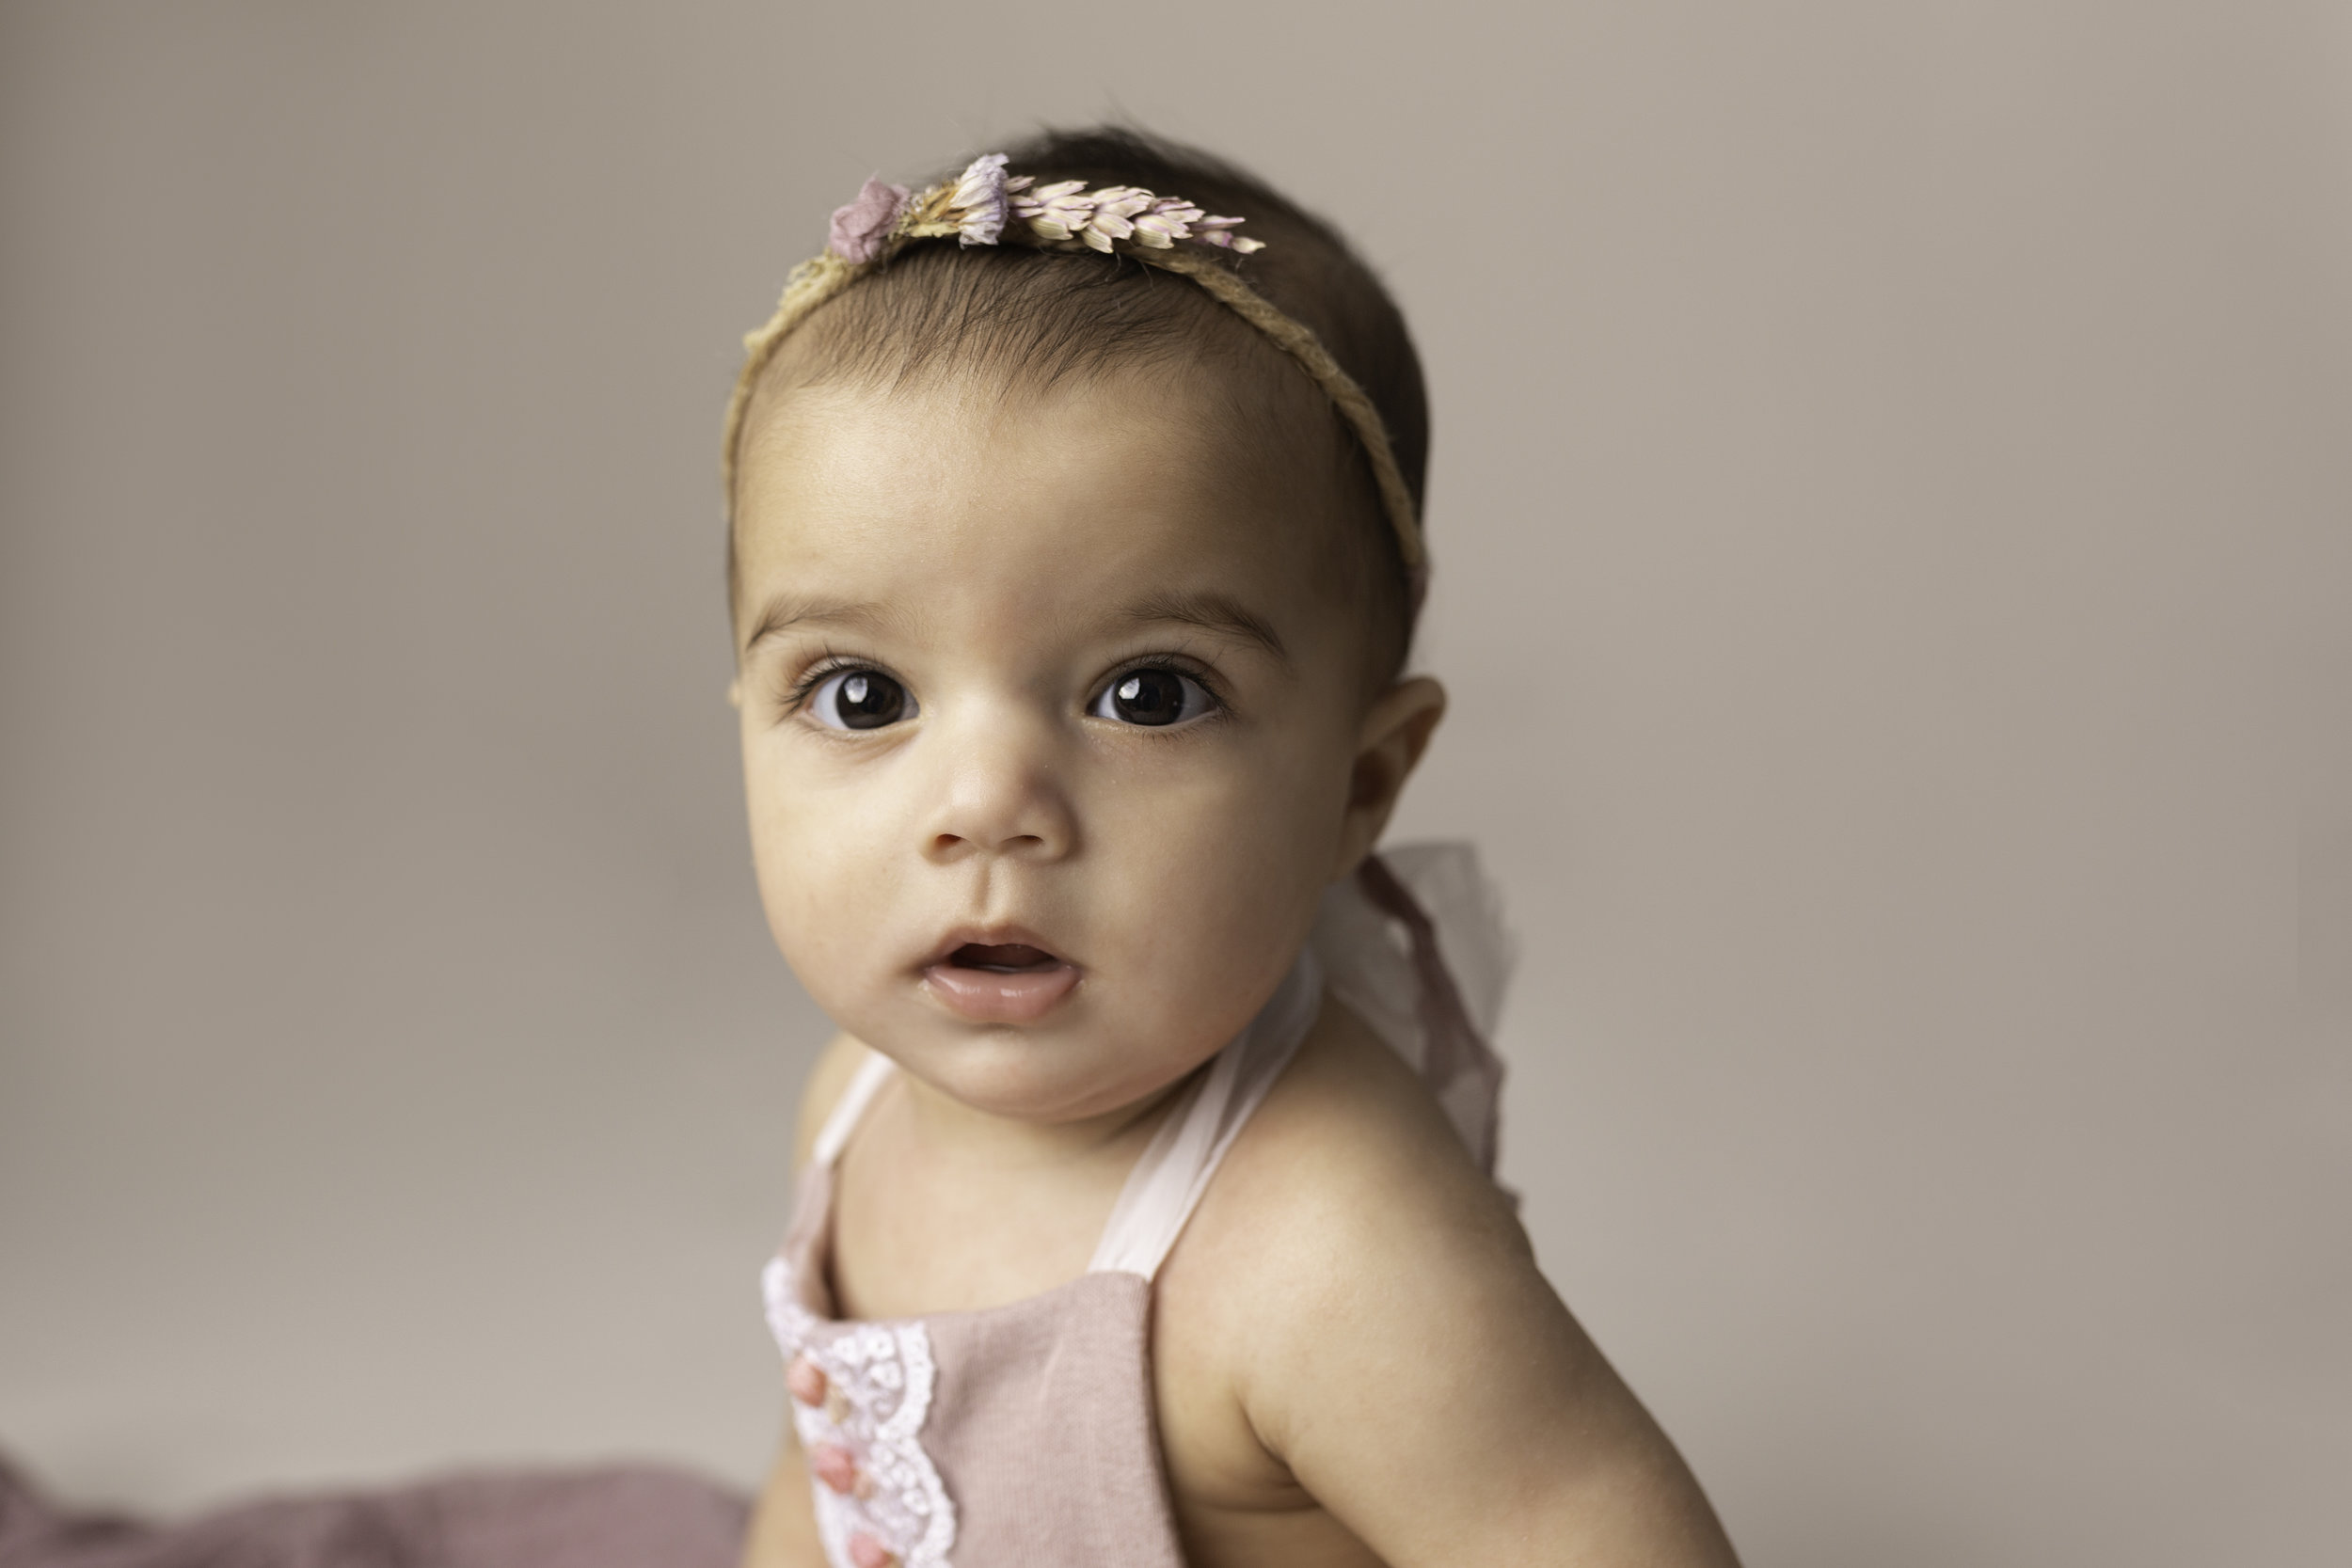 Lea-cooper-photography-childrens-photographer-portrait-session-sitter-session-6-months-old-photos-willenhall-wolverahmpton-birmingham-west-midlands-uk-9.jpg